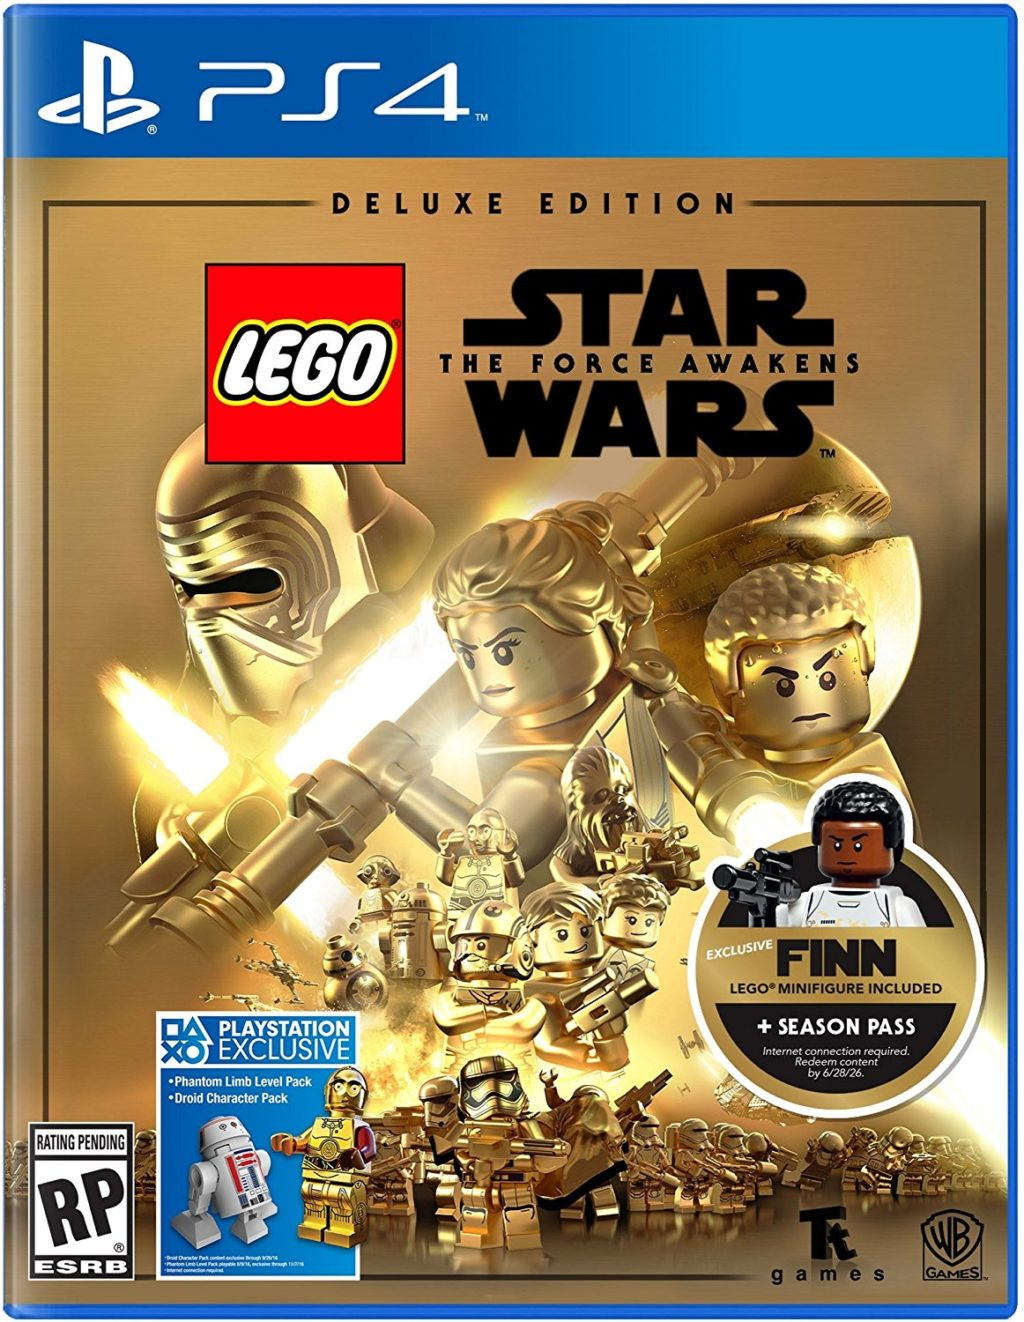 Lego Star Wars video games